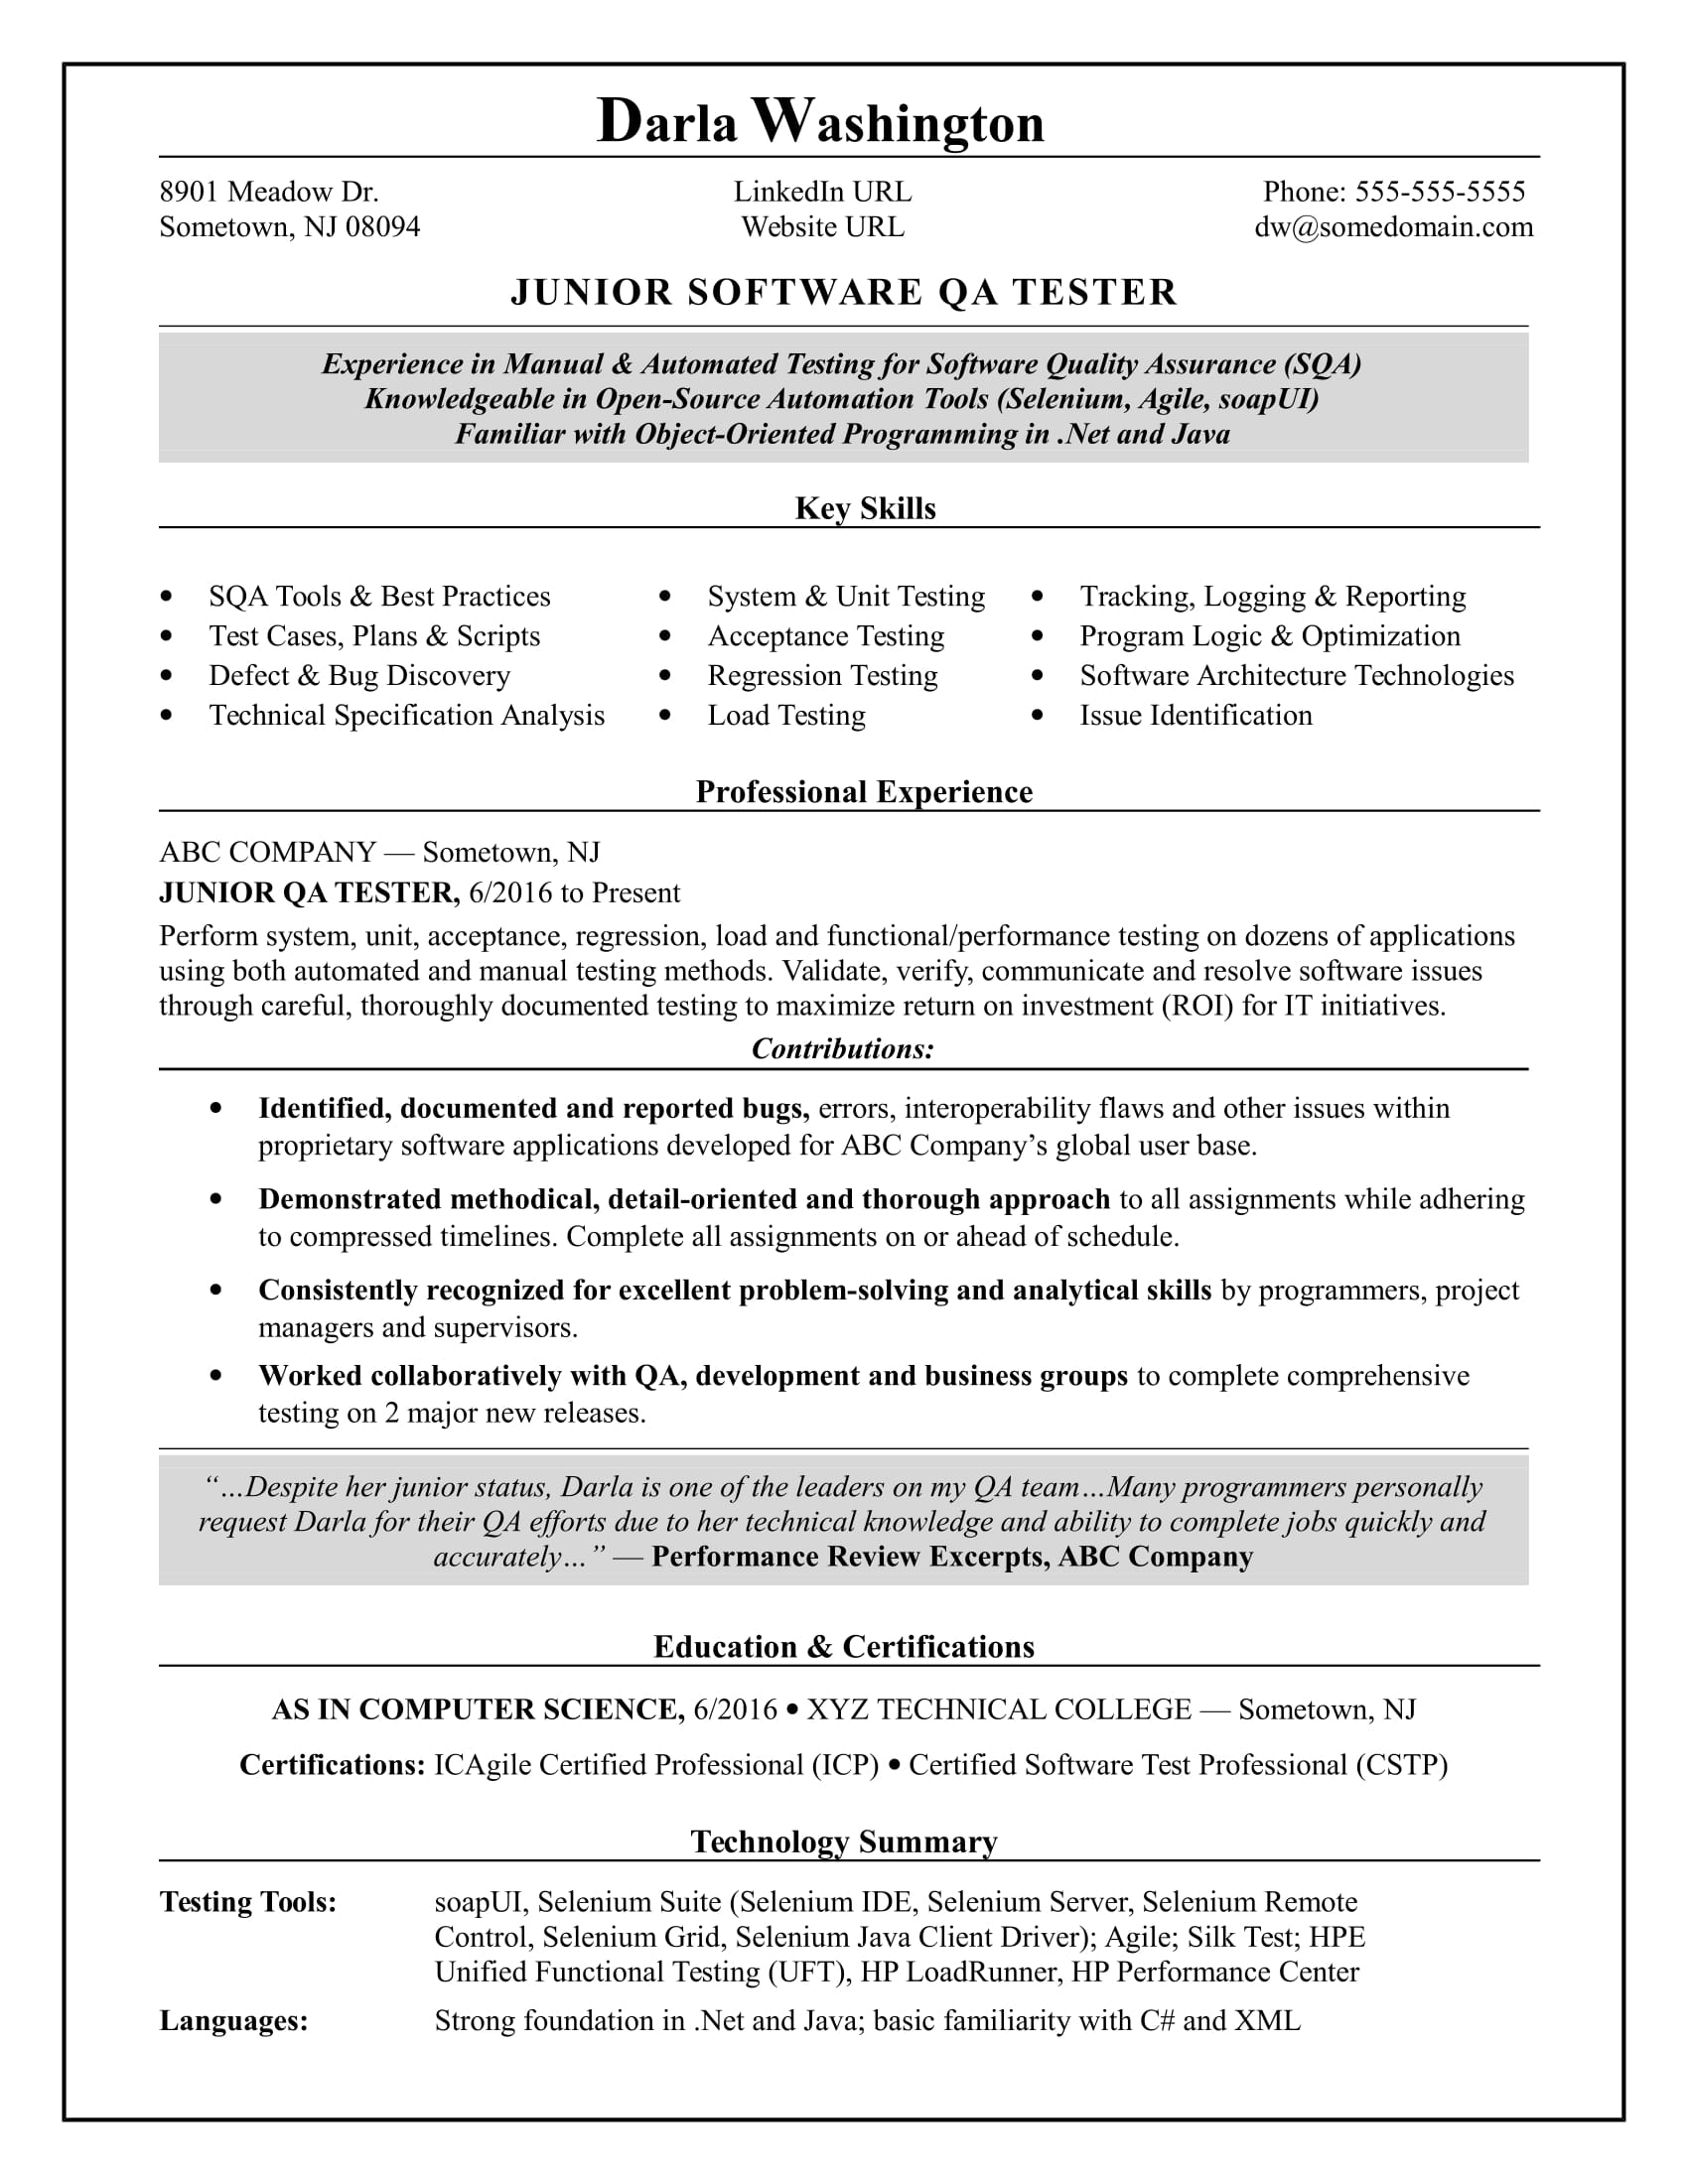 Software Testing Resume Format For 1 Year Experience Entry Level Qa Software Tester Resume Sample Monster